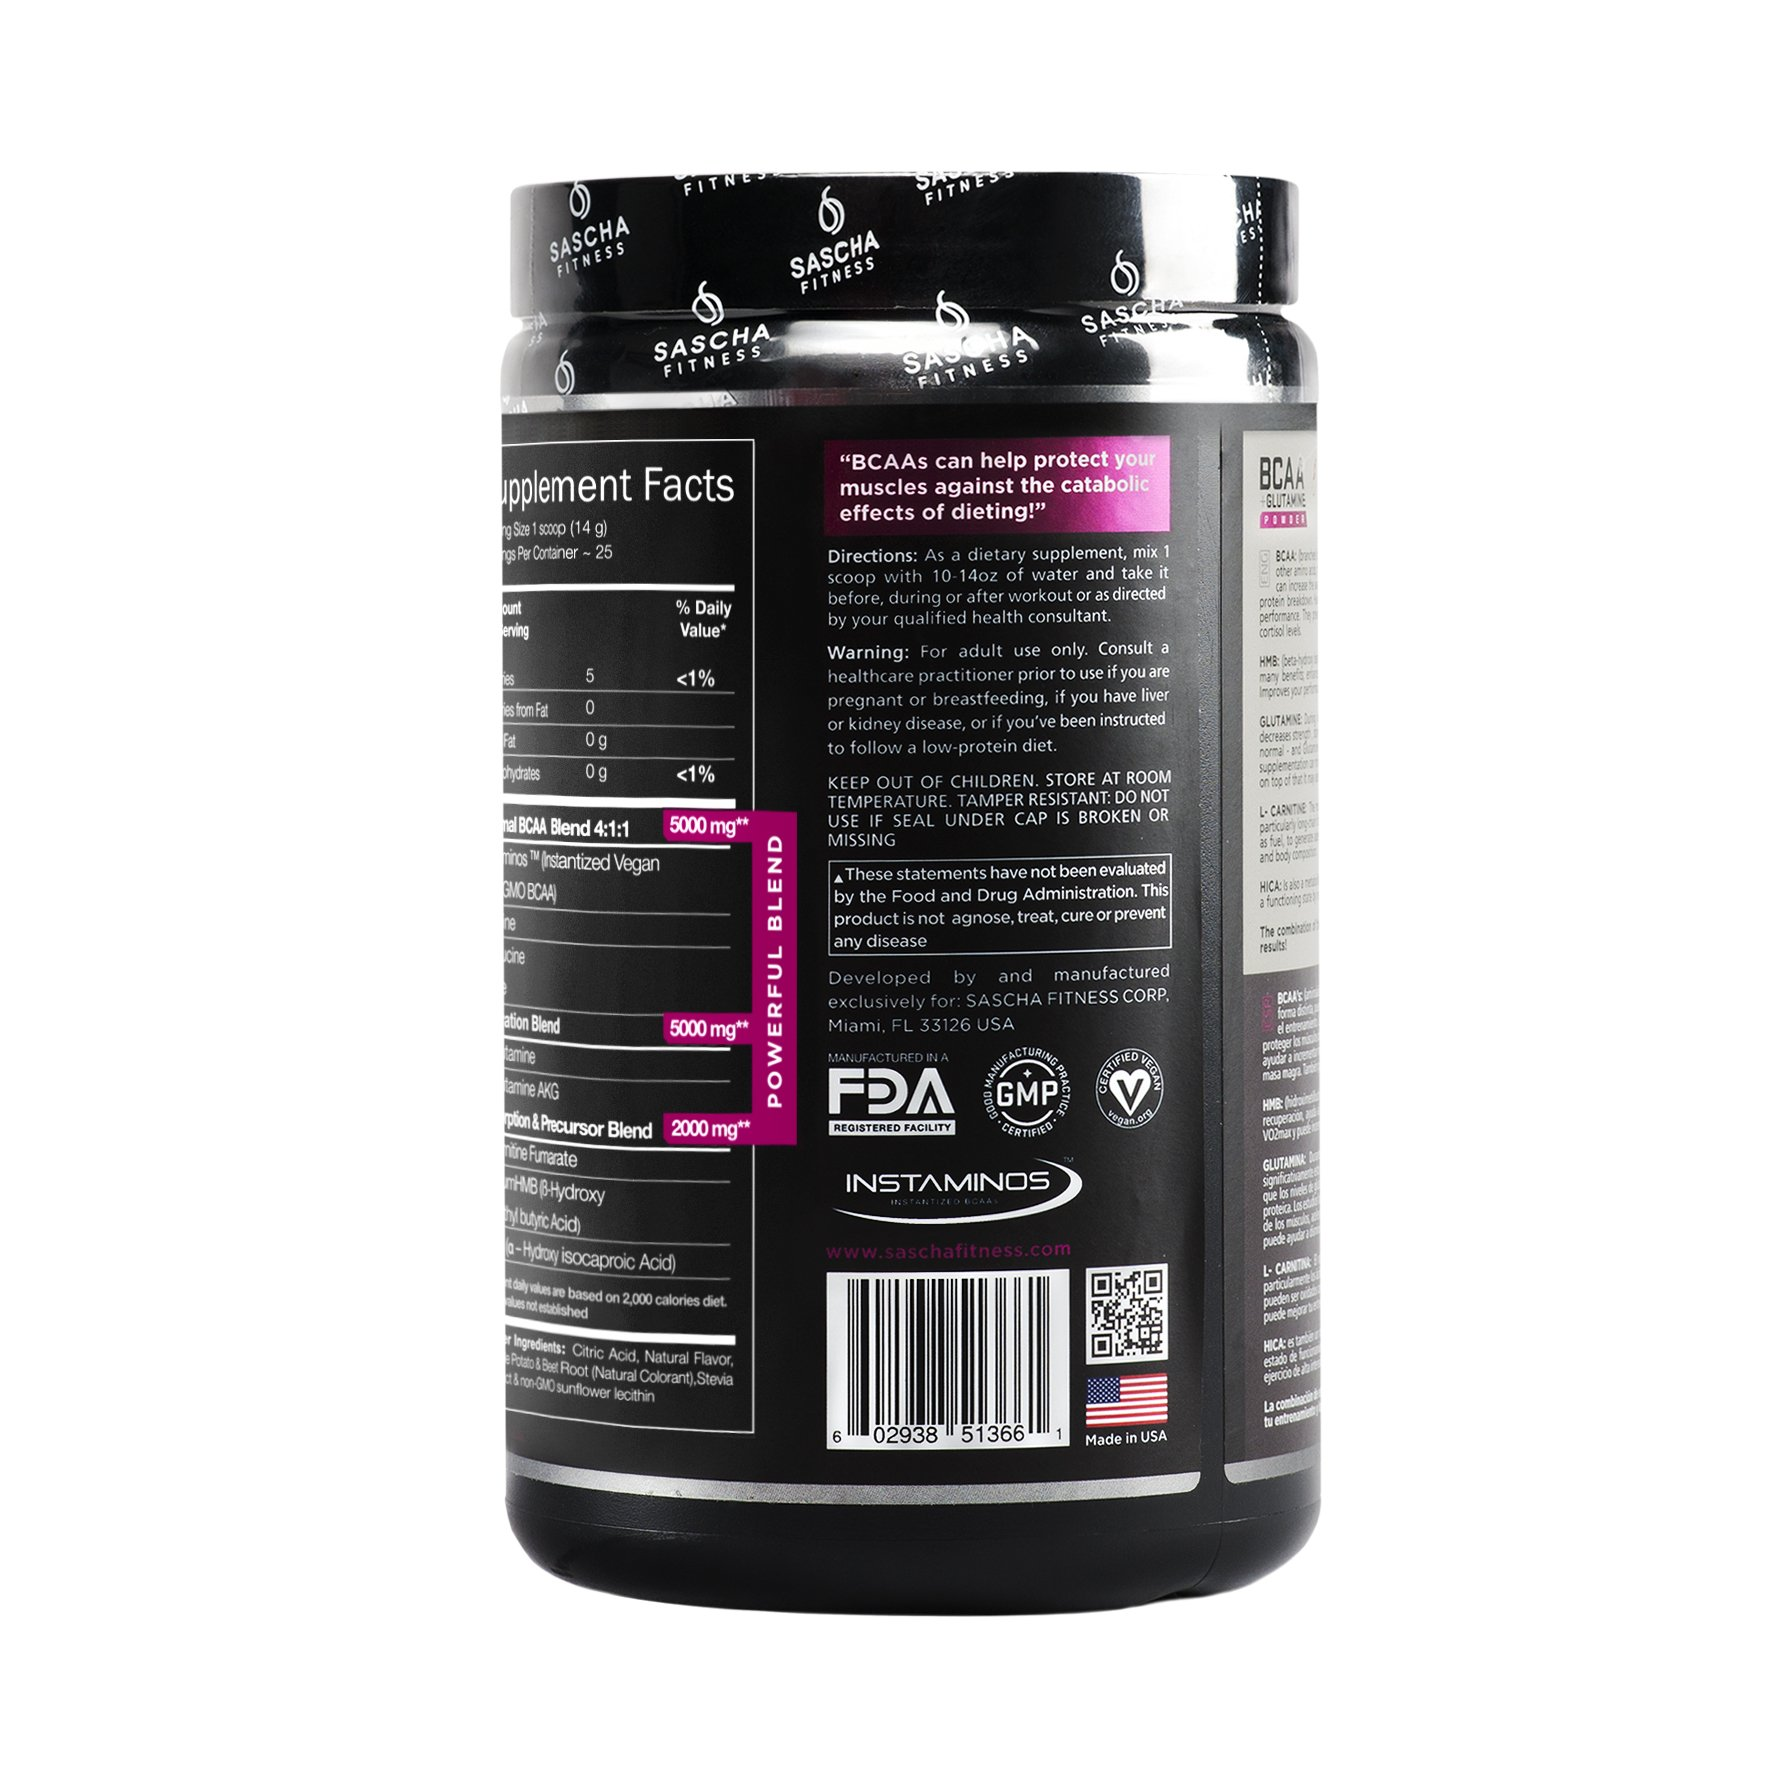 Sascha Fitness BCAA 4:1:1 + Glutamine, HMB, L-Carnitine, HICA | Powerful and Instant Powder Blend with Branched Chain Amino Acids (BCAAs) for Pre, Intra and Post-Workout | Natural Grape Flavor, 350g by SASCHA FITNESS (Image #7)